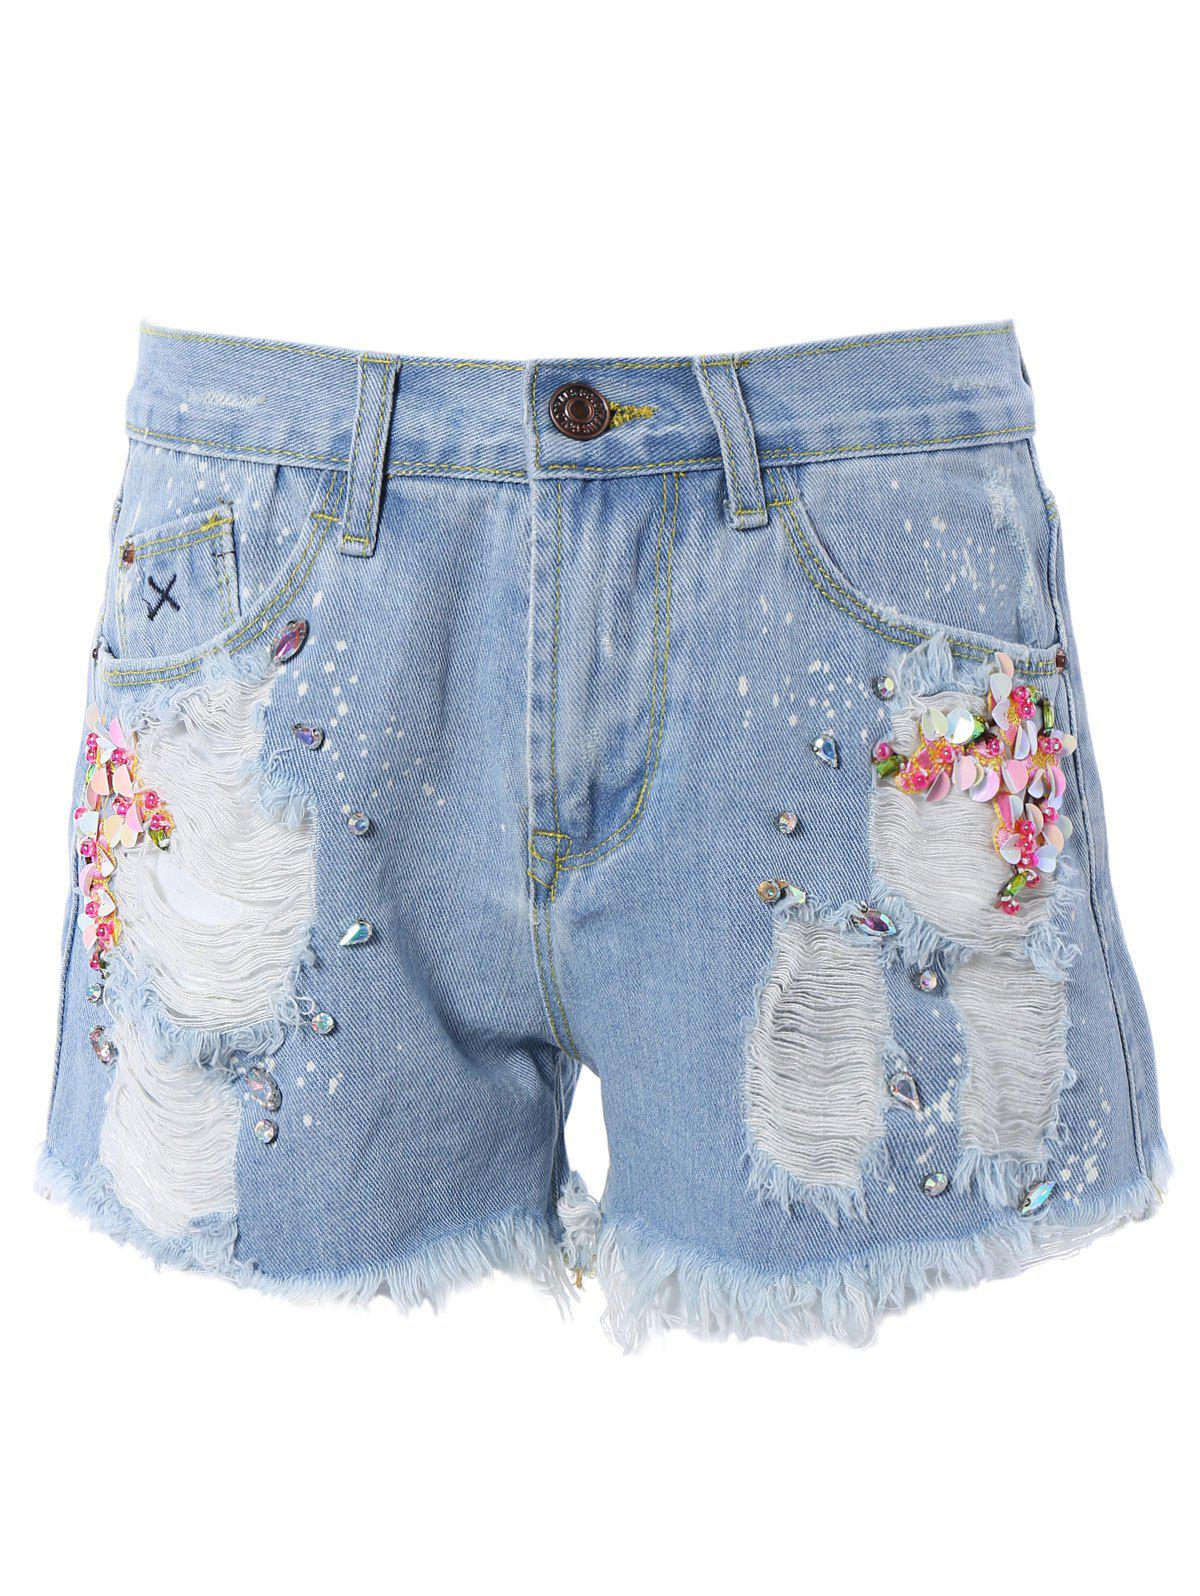 Beaded Ripped Denim Shorts - LIGHT BLUE L